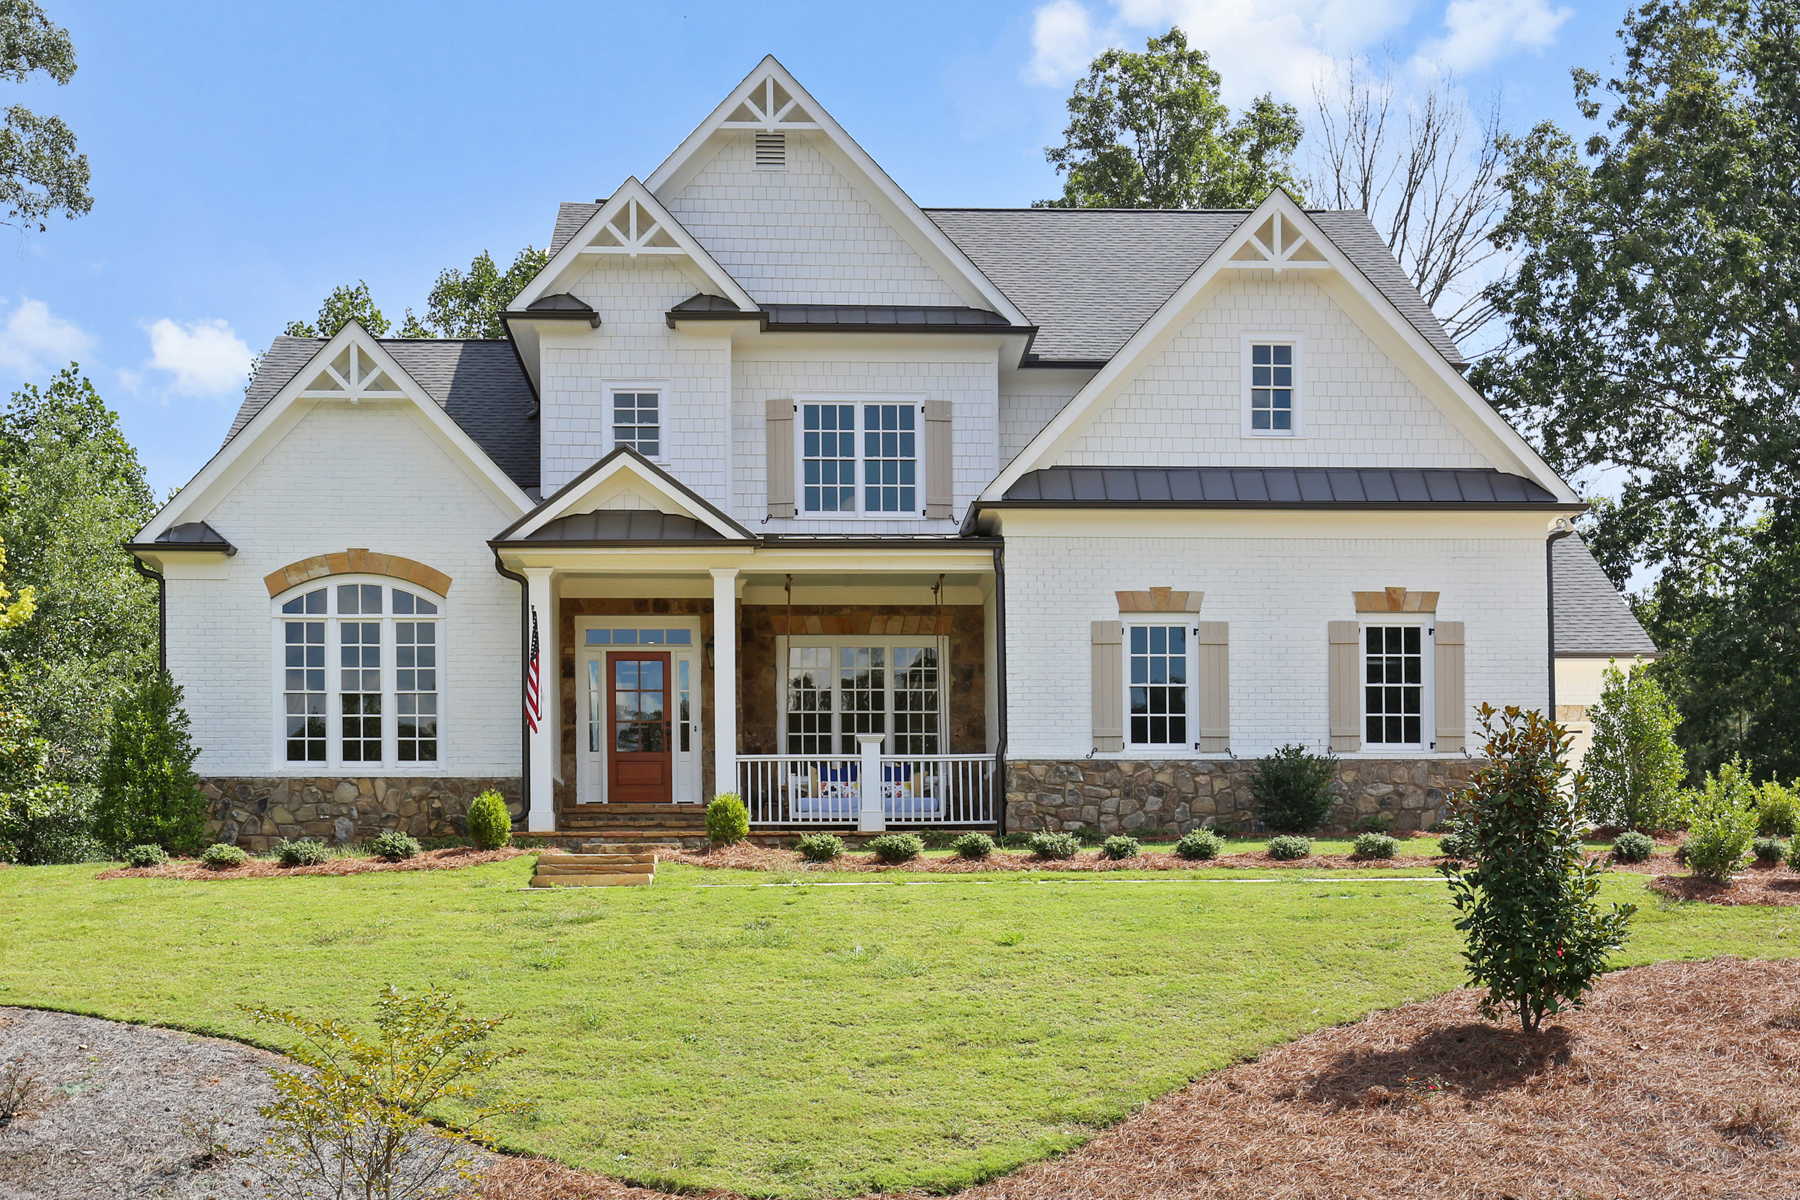 Single Family Home for Sale at New Construction On Cul-De-Sac Lot In Sought After Sim Tennis 1268 Oakshaw Run Roswell, Georgia 30075 United States